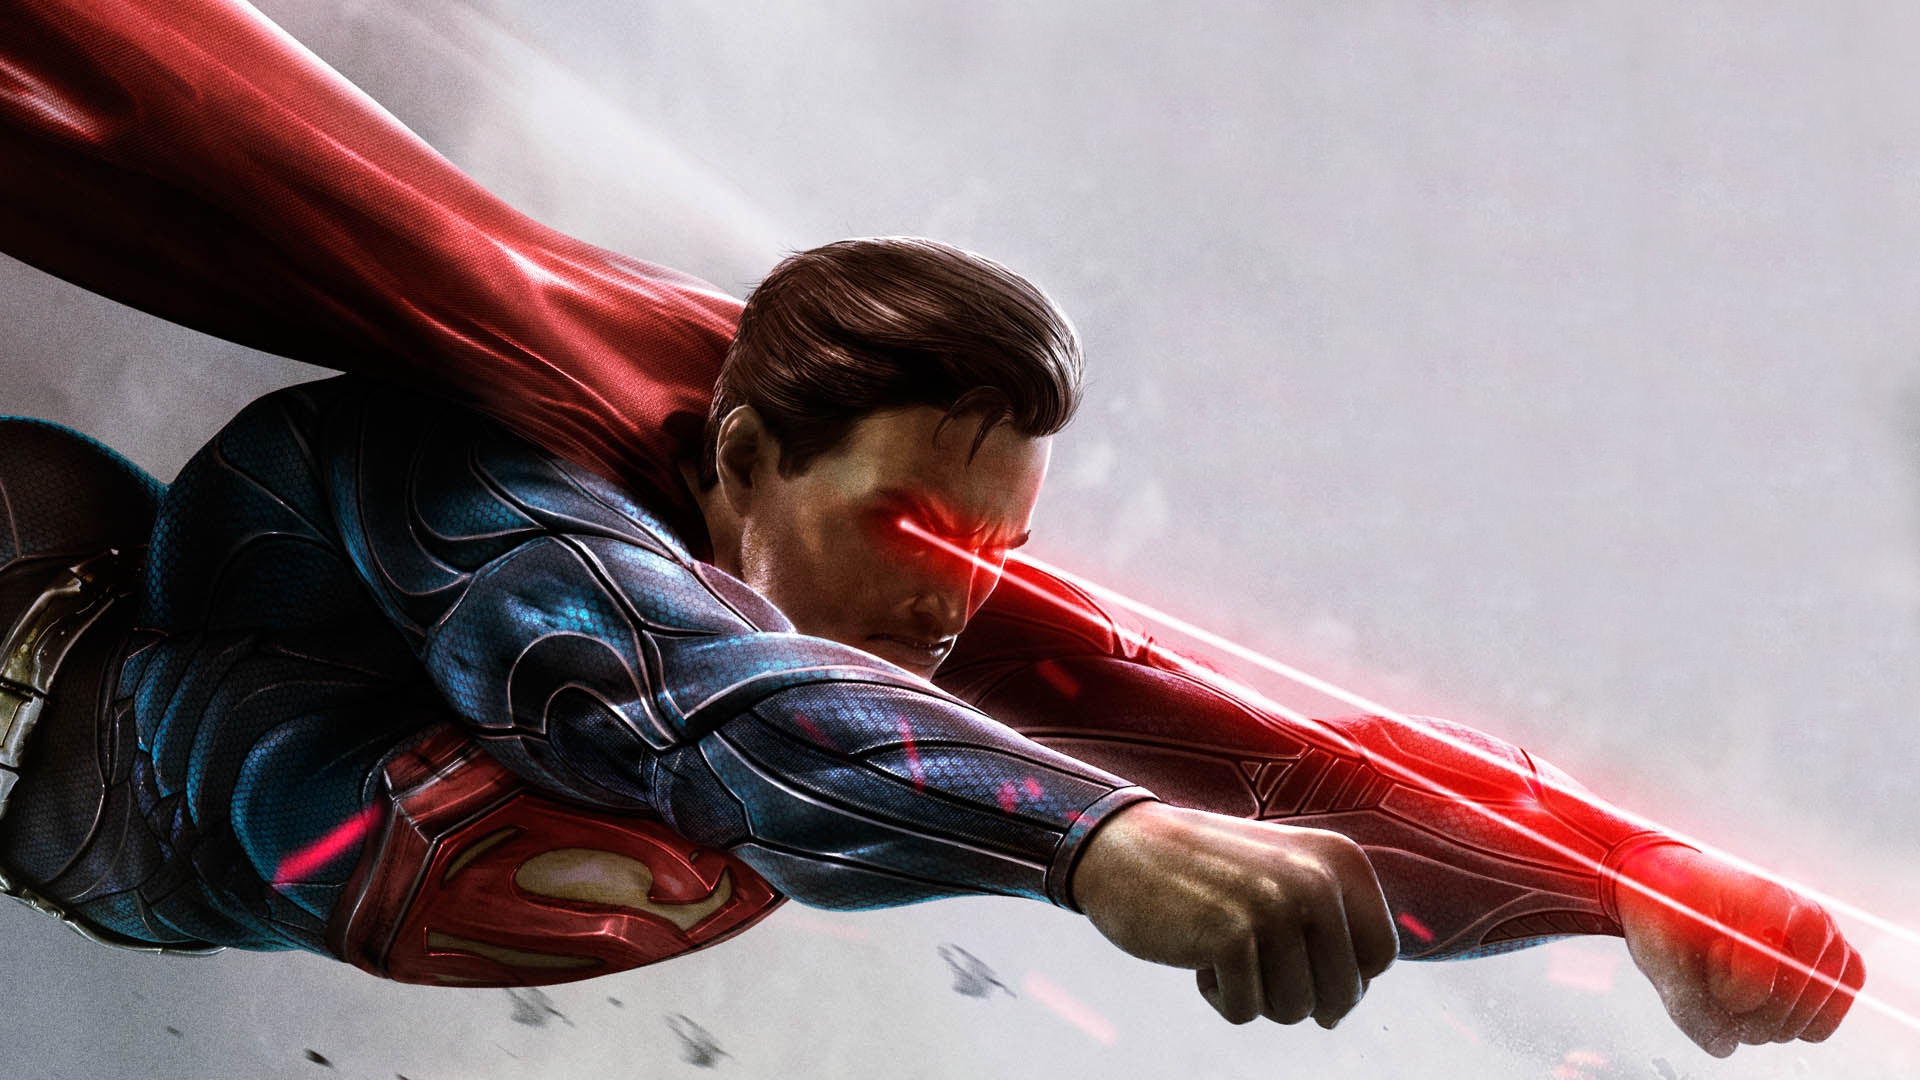 Superman HD Desktop Background 1920x1080